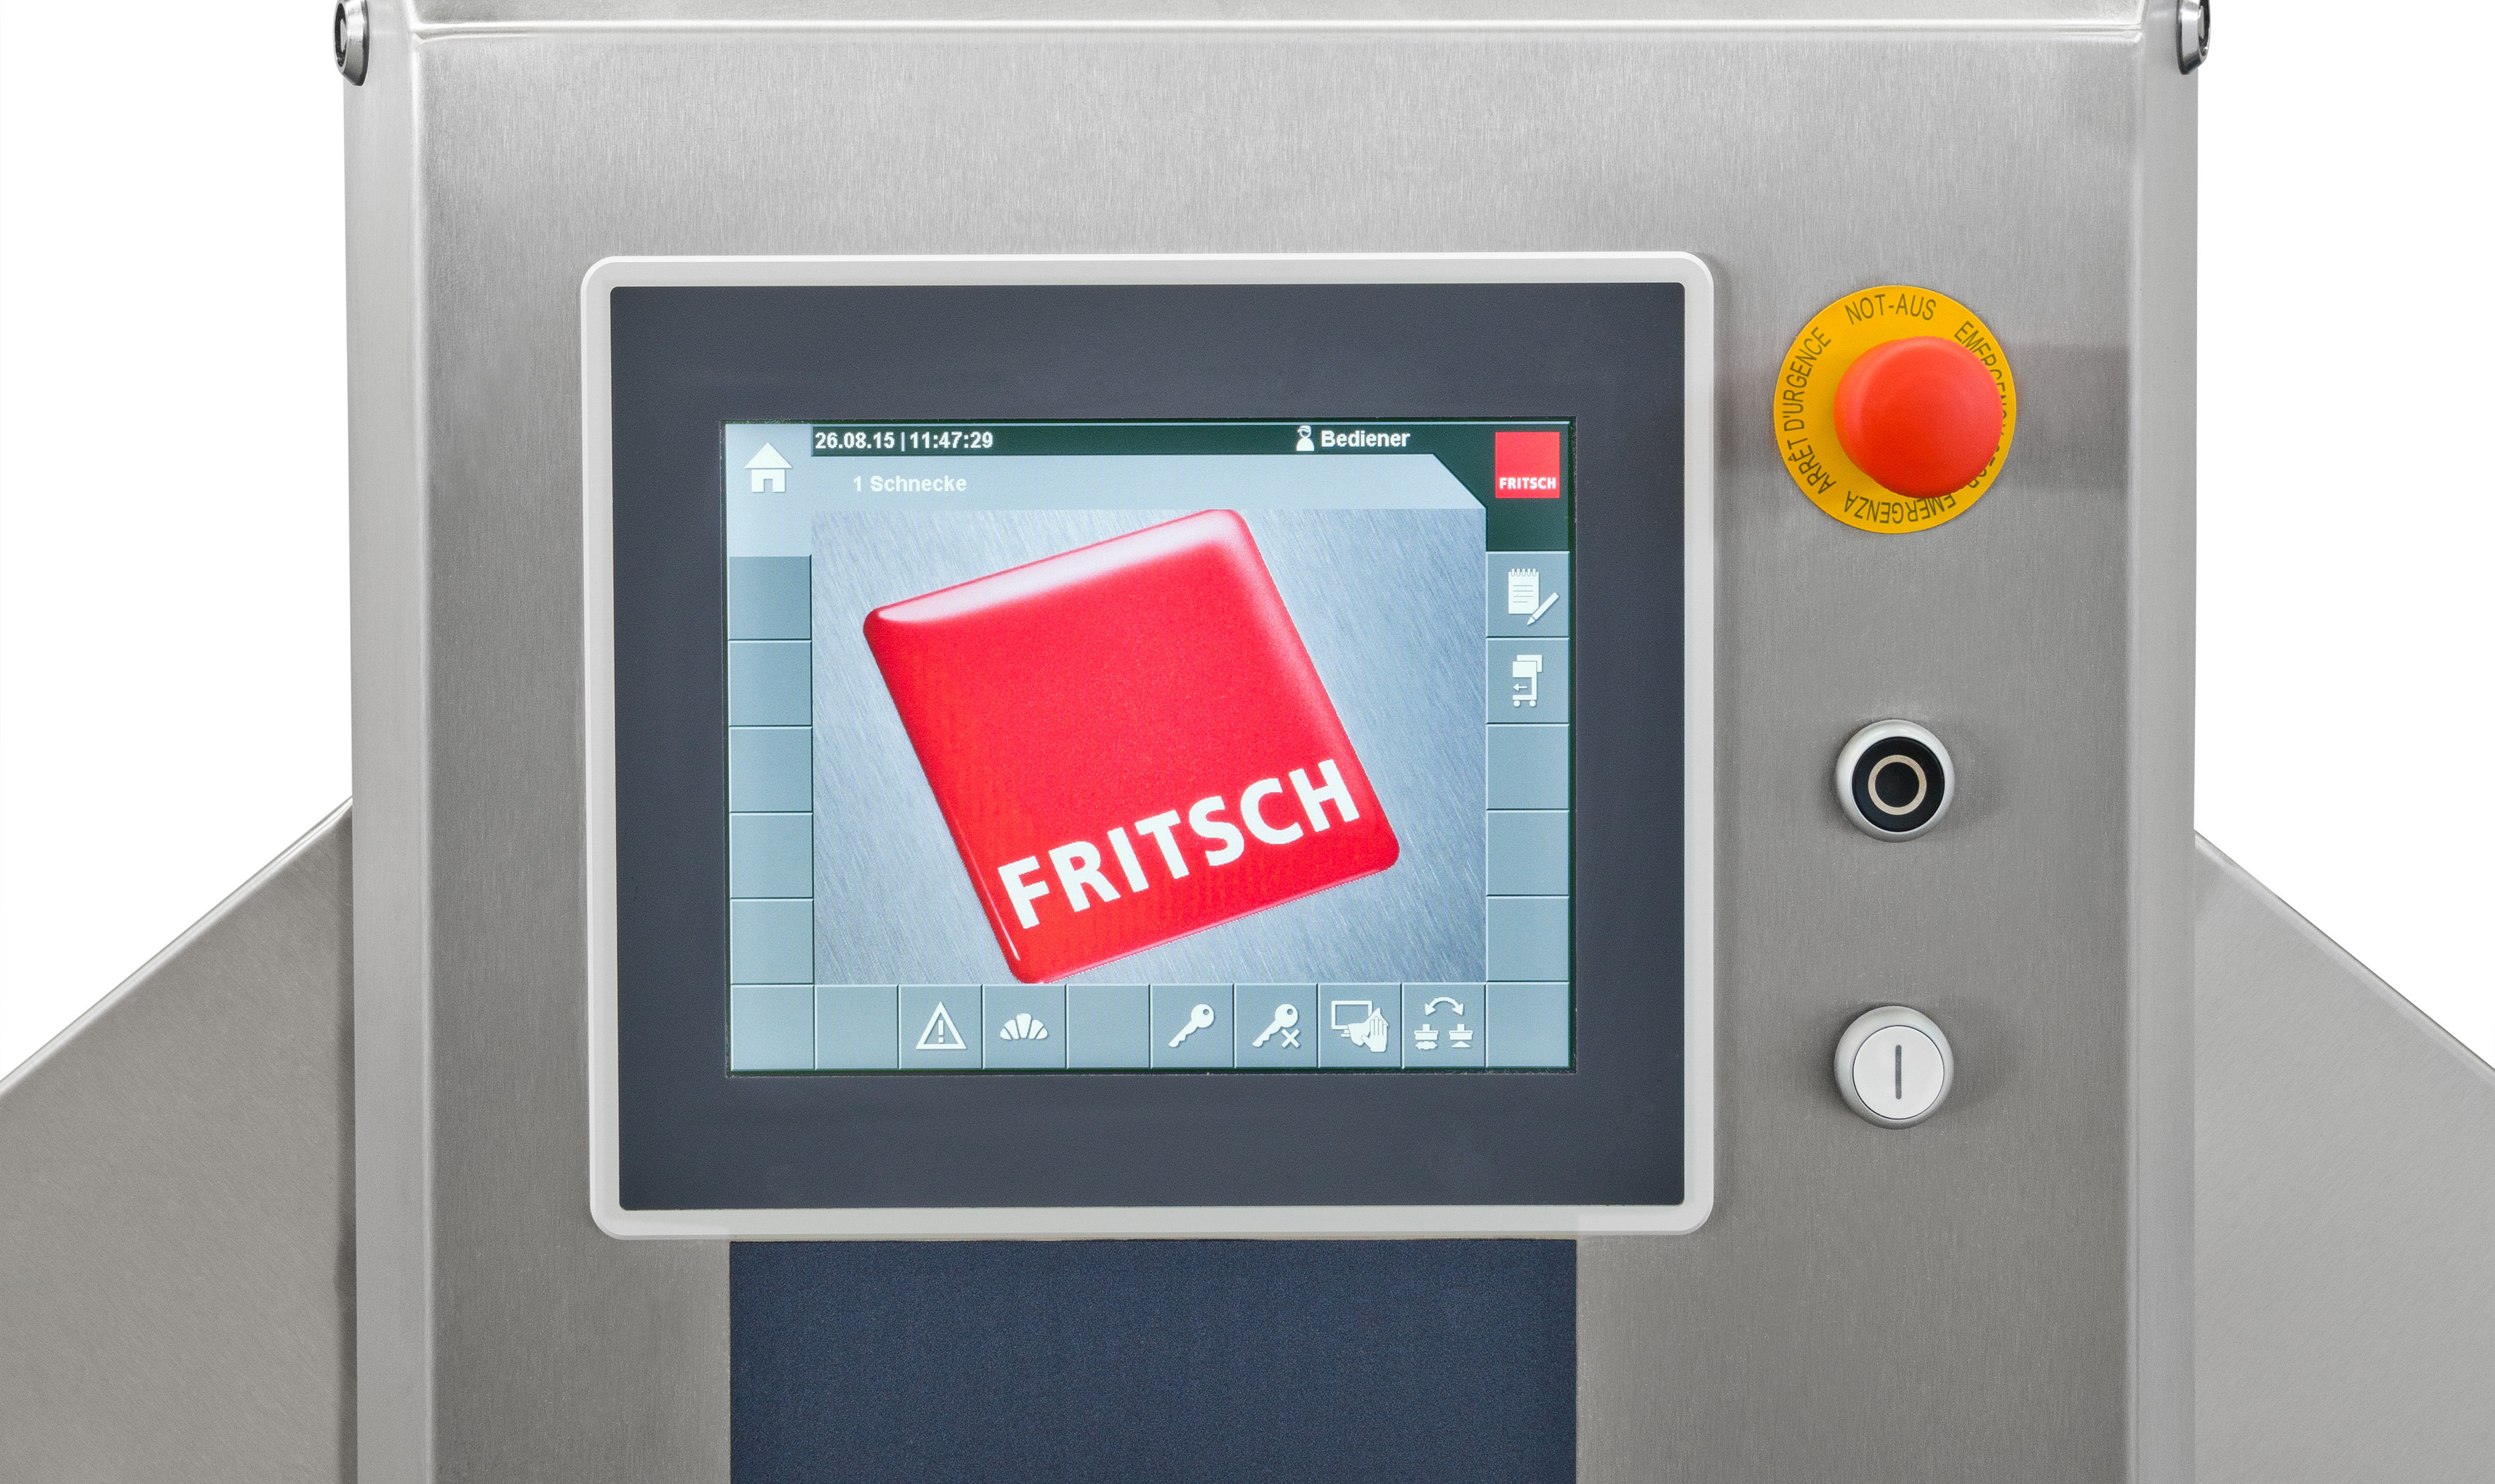 FRITSCH bakery machines pastries Easyline commande